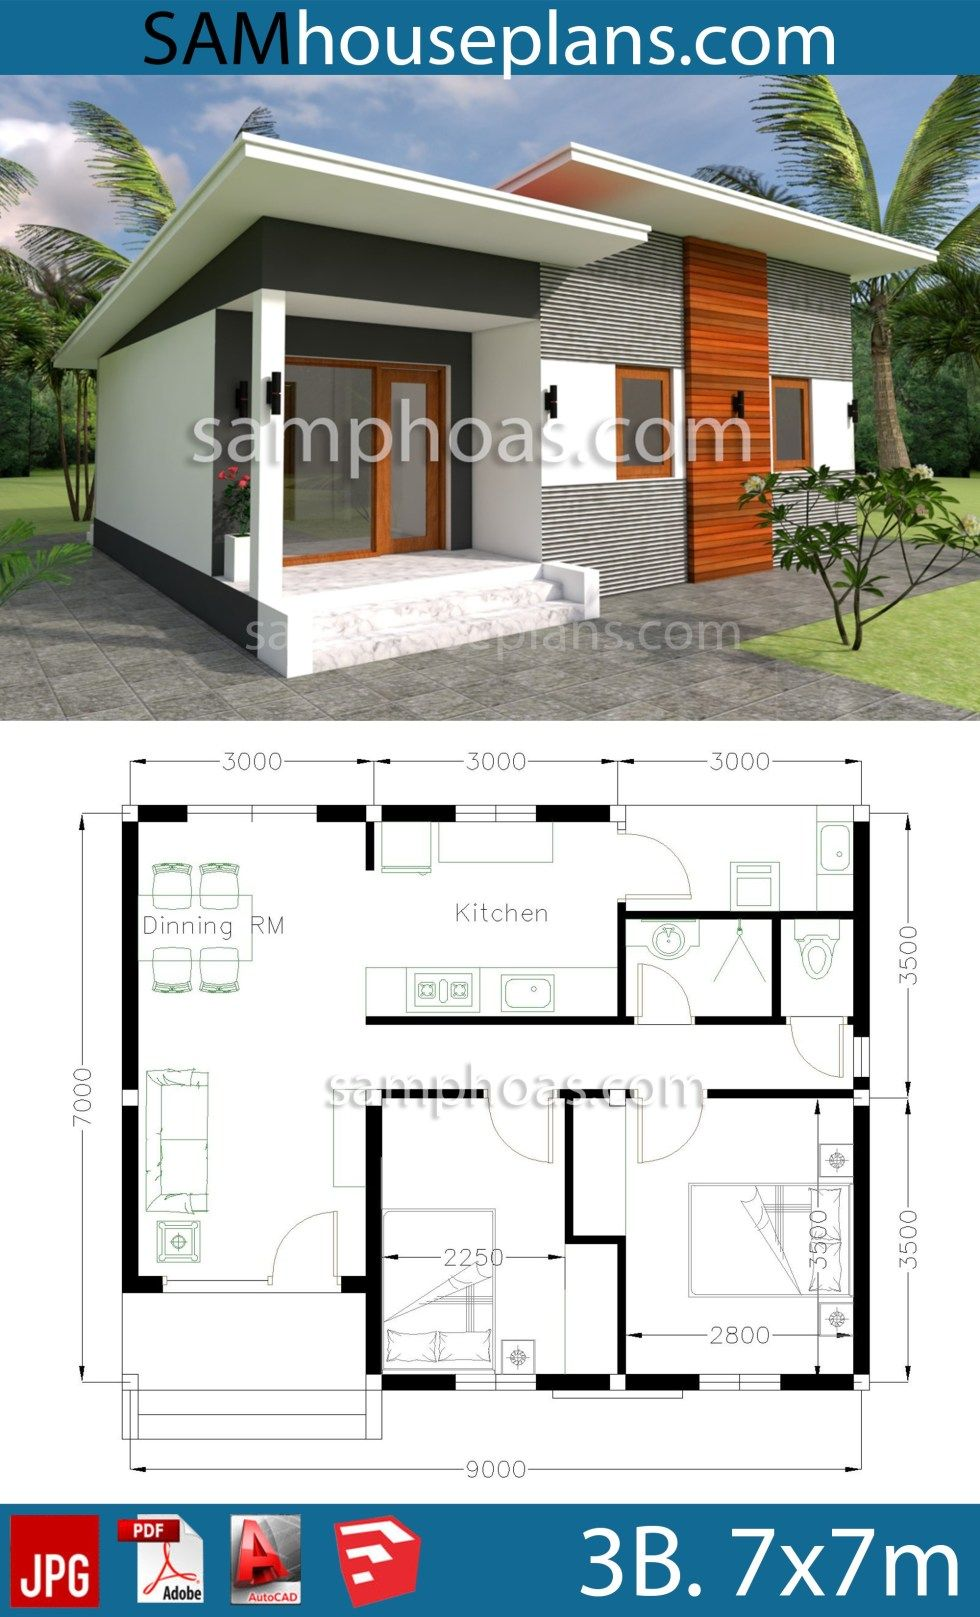 House Plans 9x7m With 2 Bedrooms Sam House Plans House Roof Design Small House Roof Design My House Plans